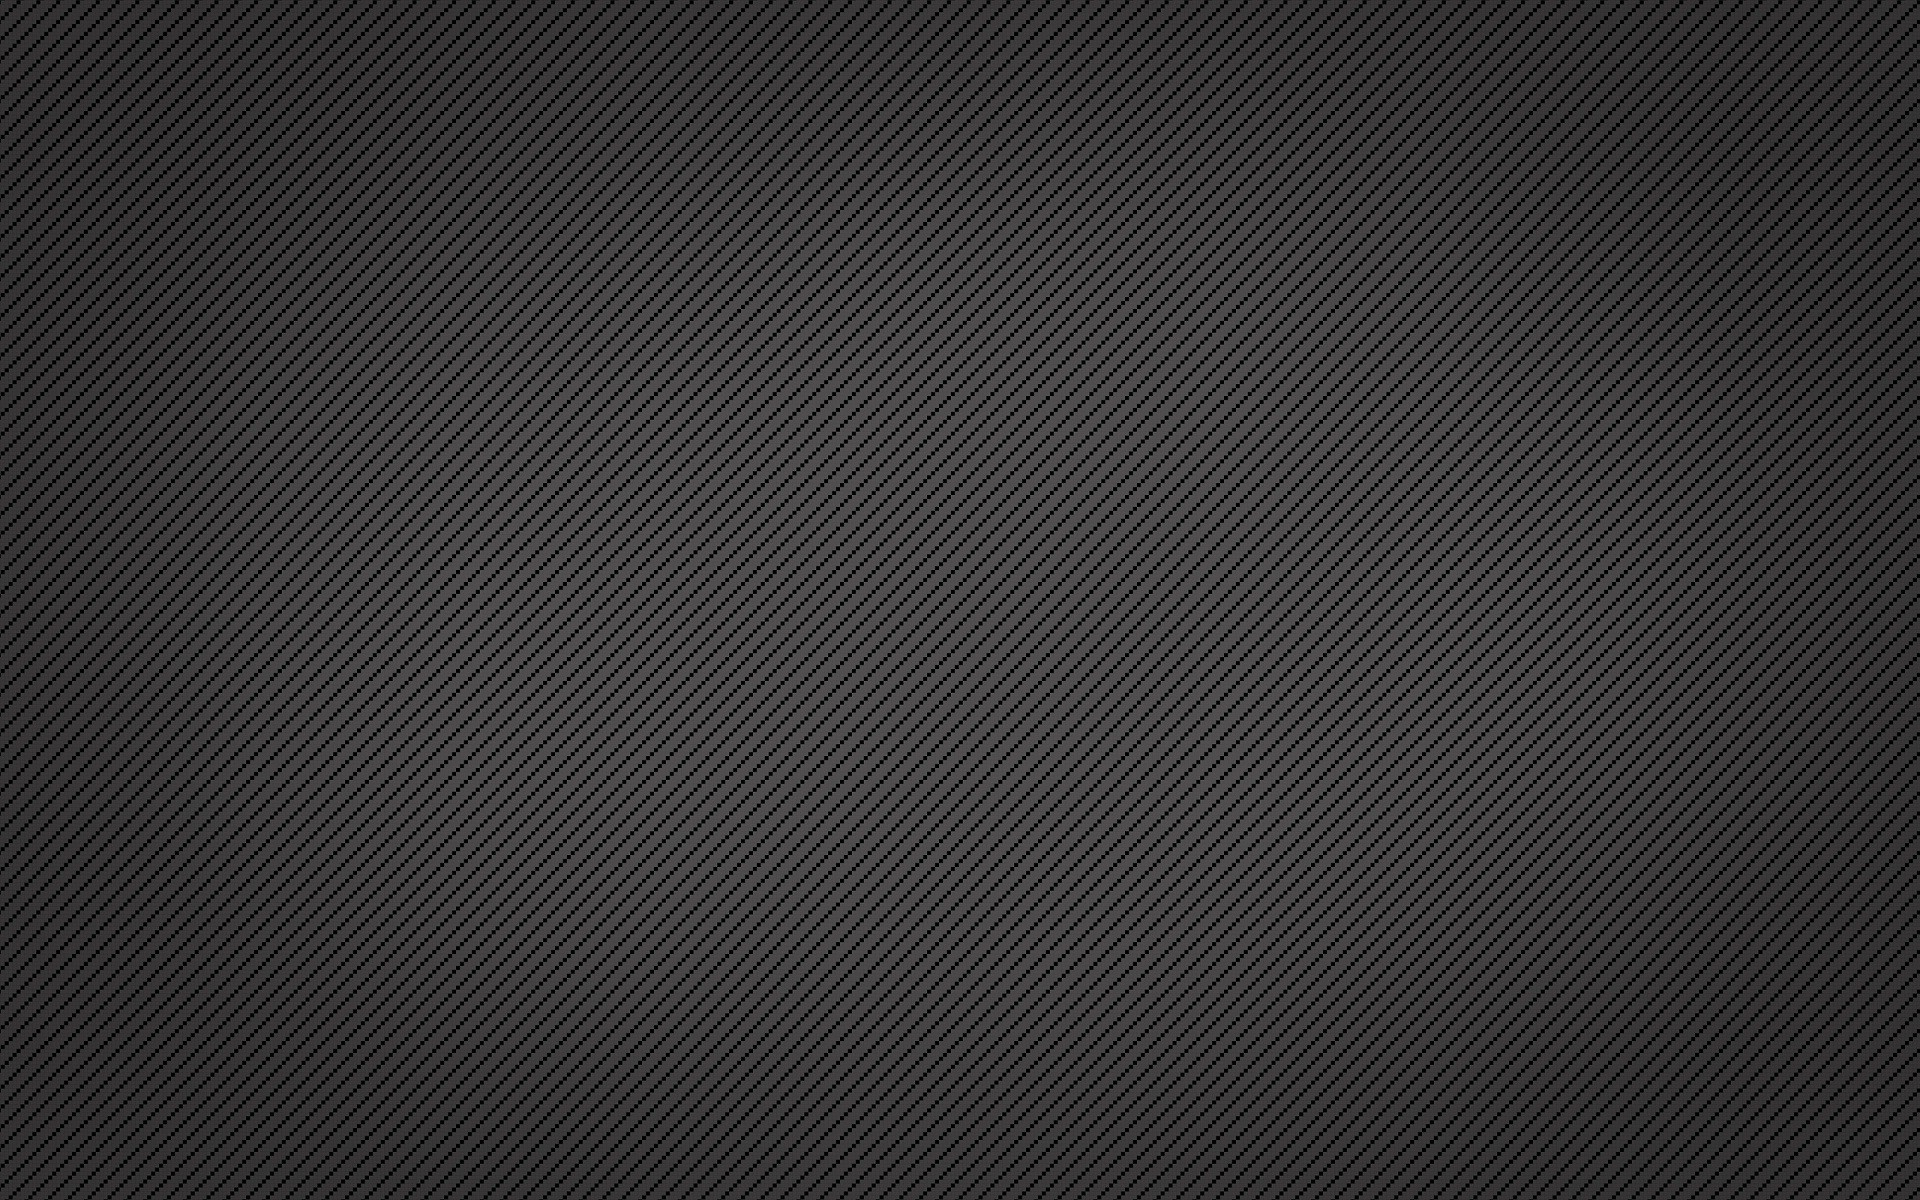 Plain black cross lines HD background wallpapers